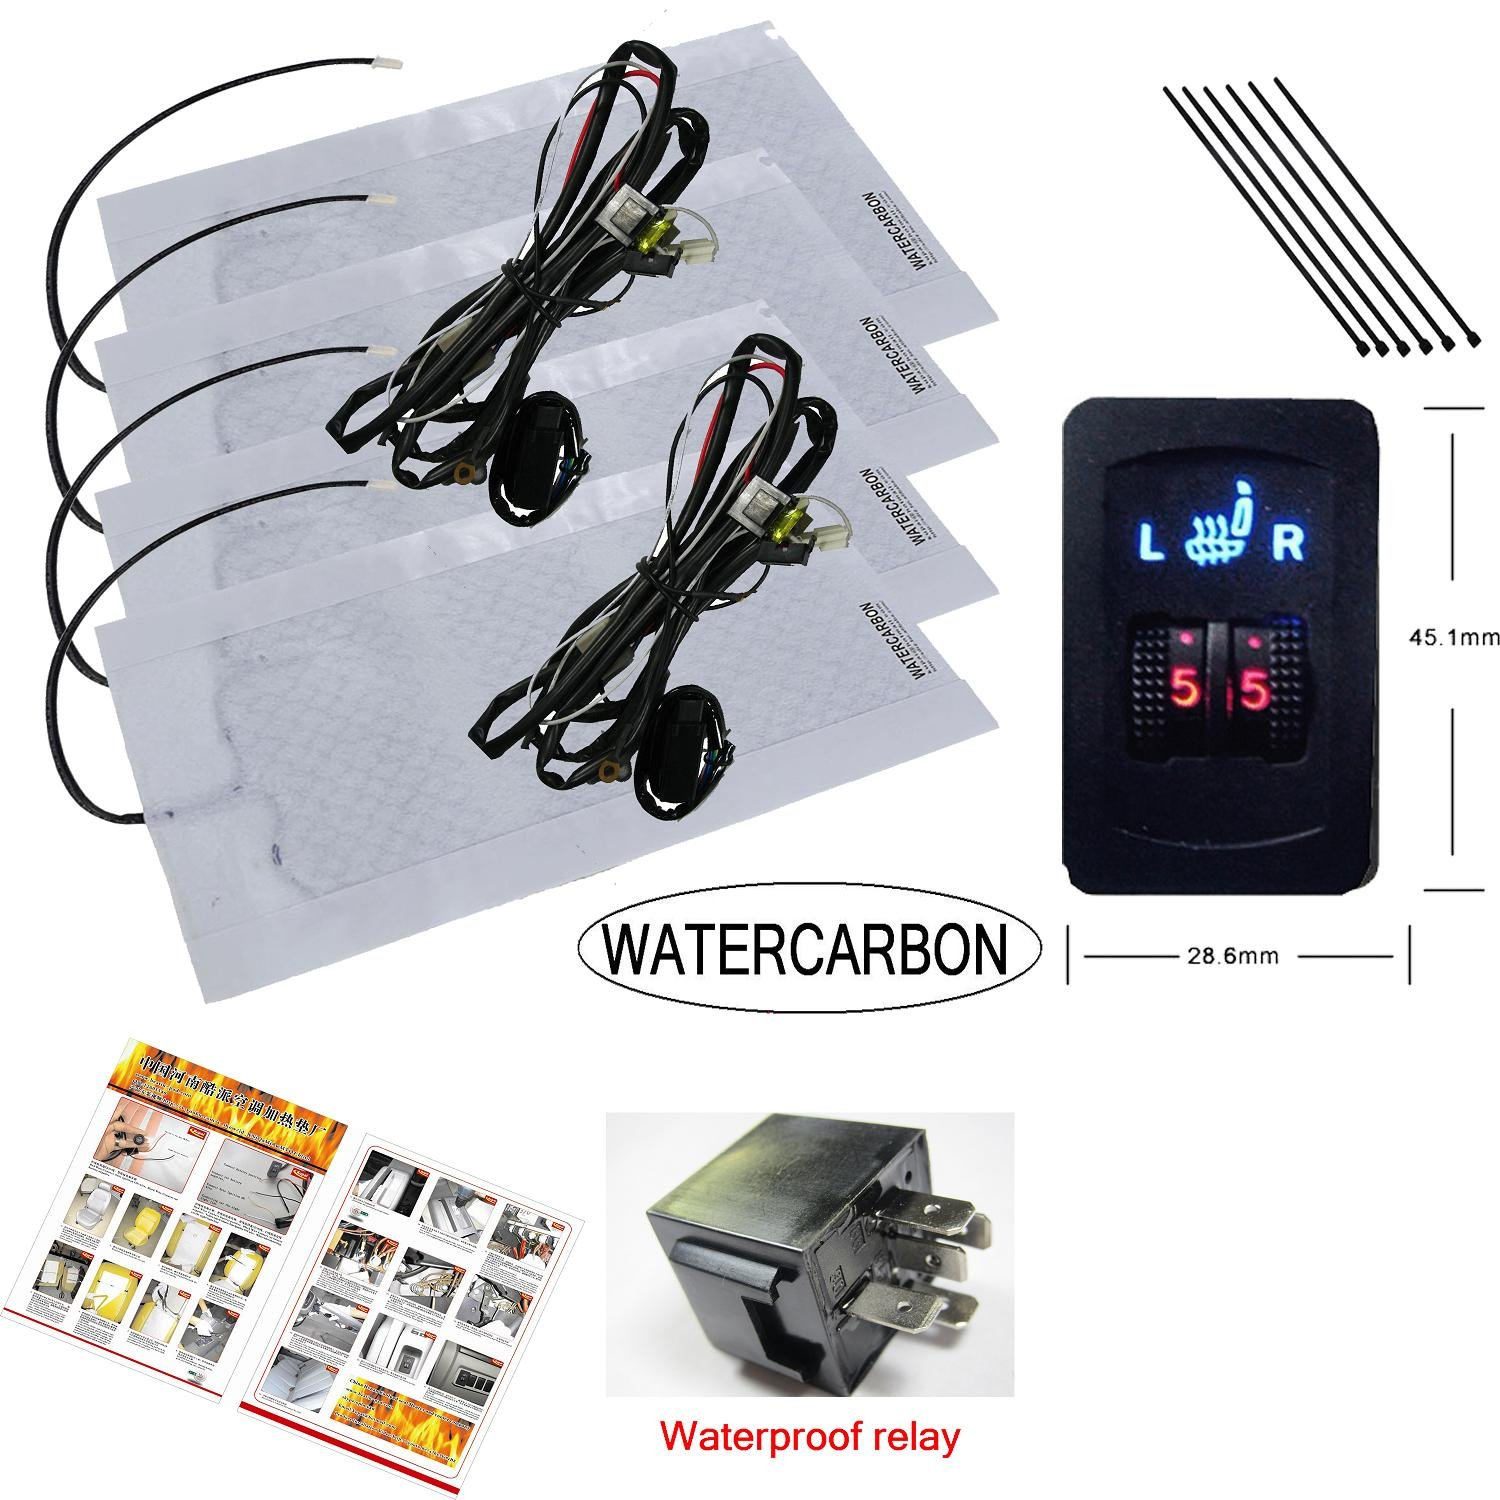 Water Carbon Premium Heated Seat Kits For Two Seats 5 2009 Mazda Fuse Box Dial Setting Kit Electronics